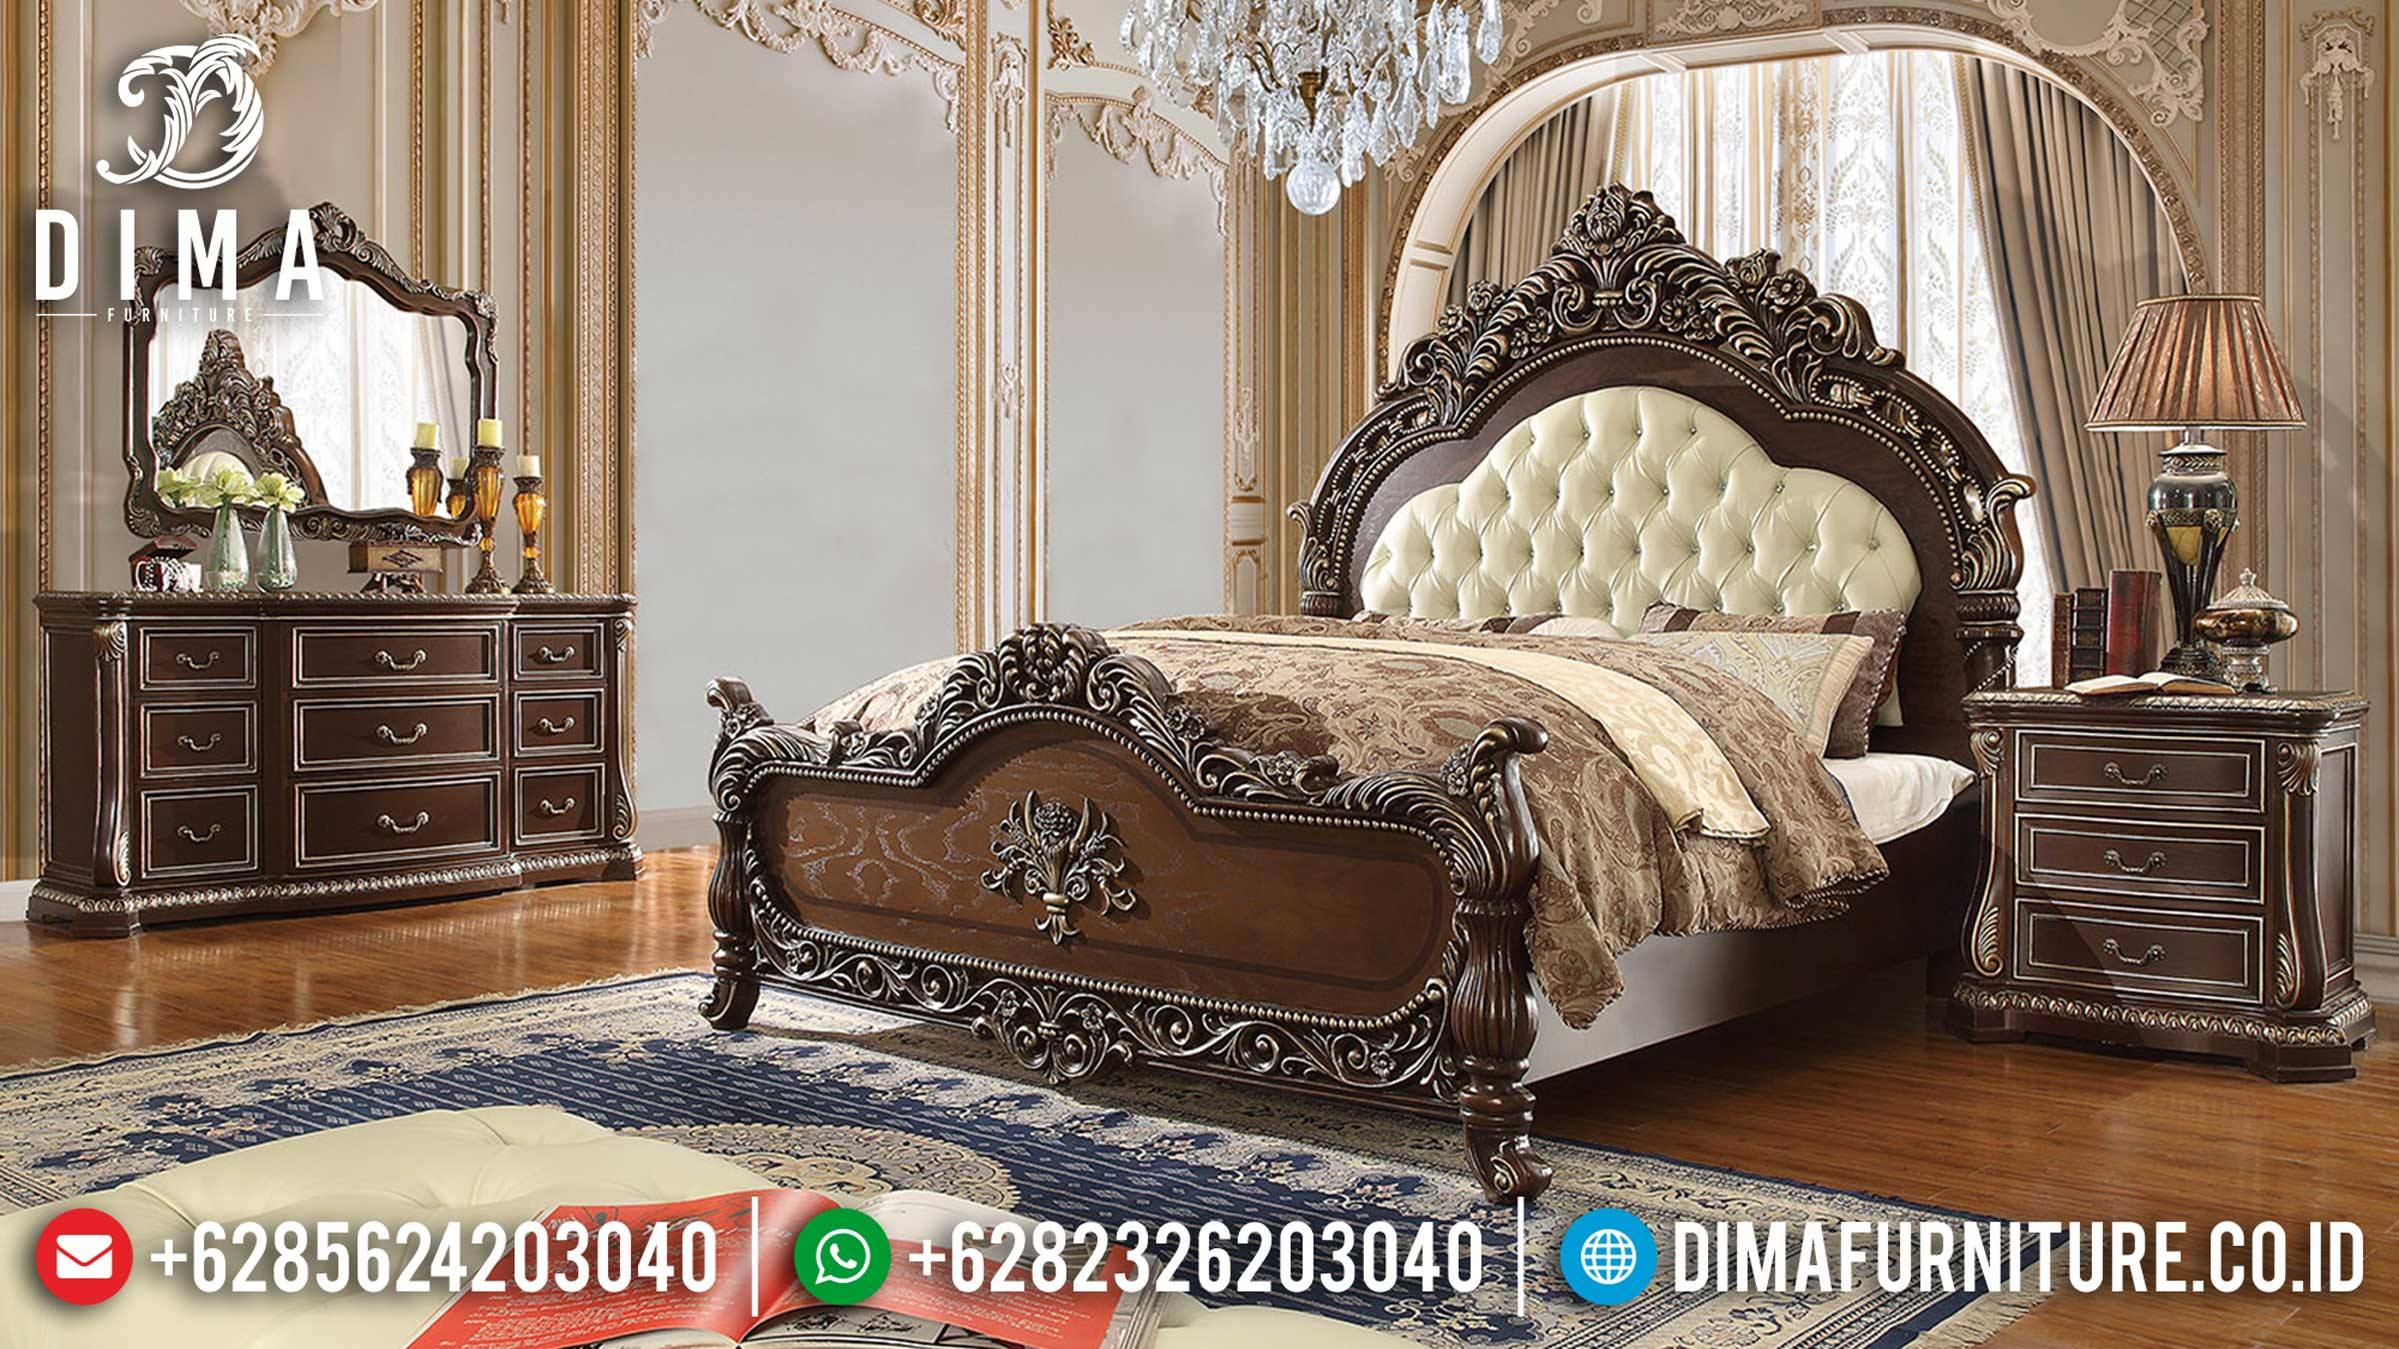 Model Kamar Set Mewah Ukiran Luxury Classic Jepara Natural Salak Brown Color TTJ-1140